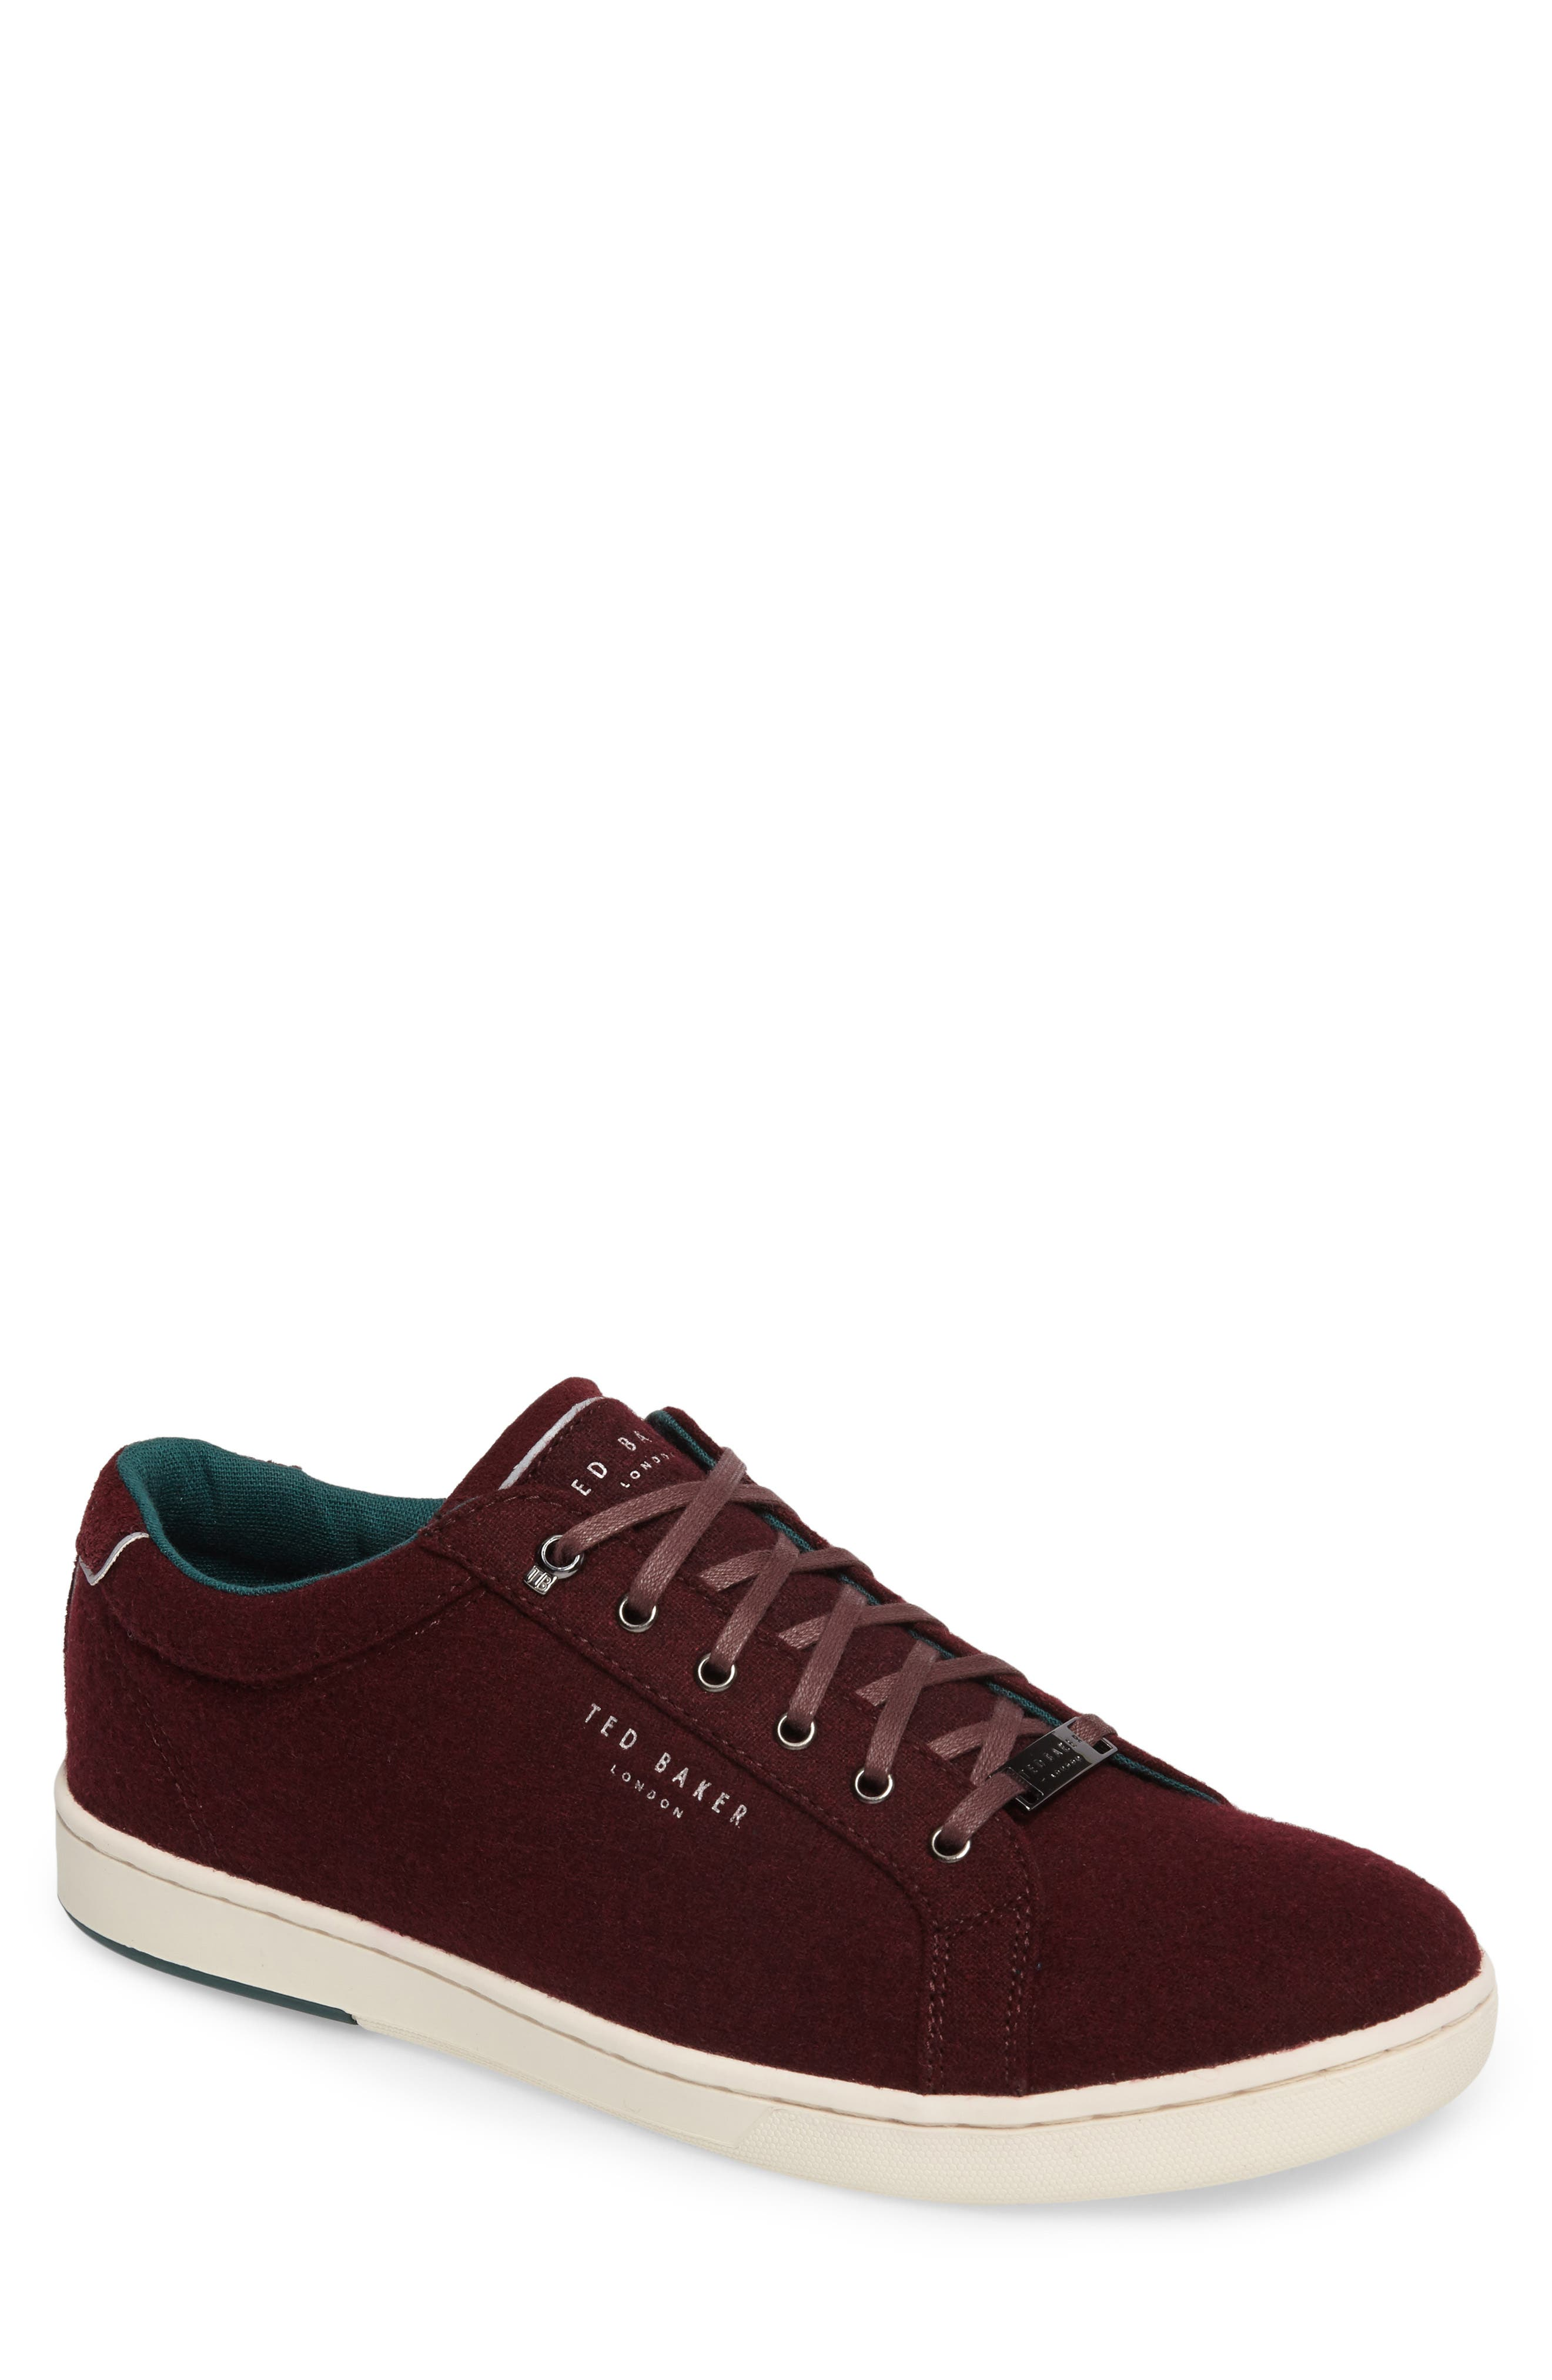 Main Image - Ted Baker London Minem 3 Sneaker (Men)